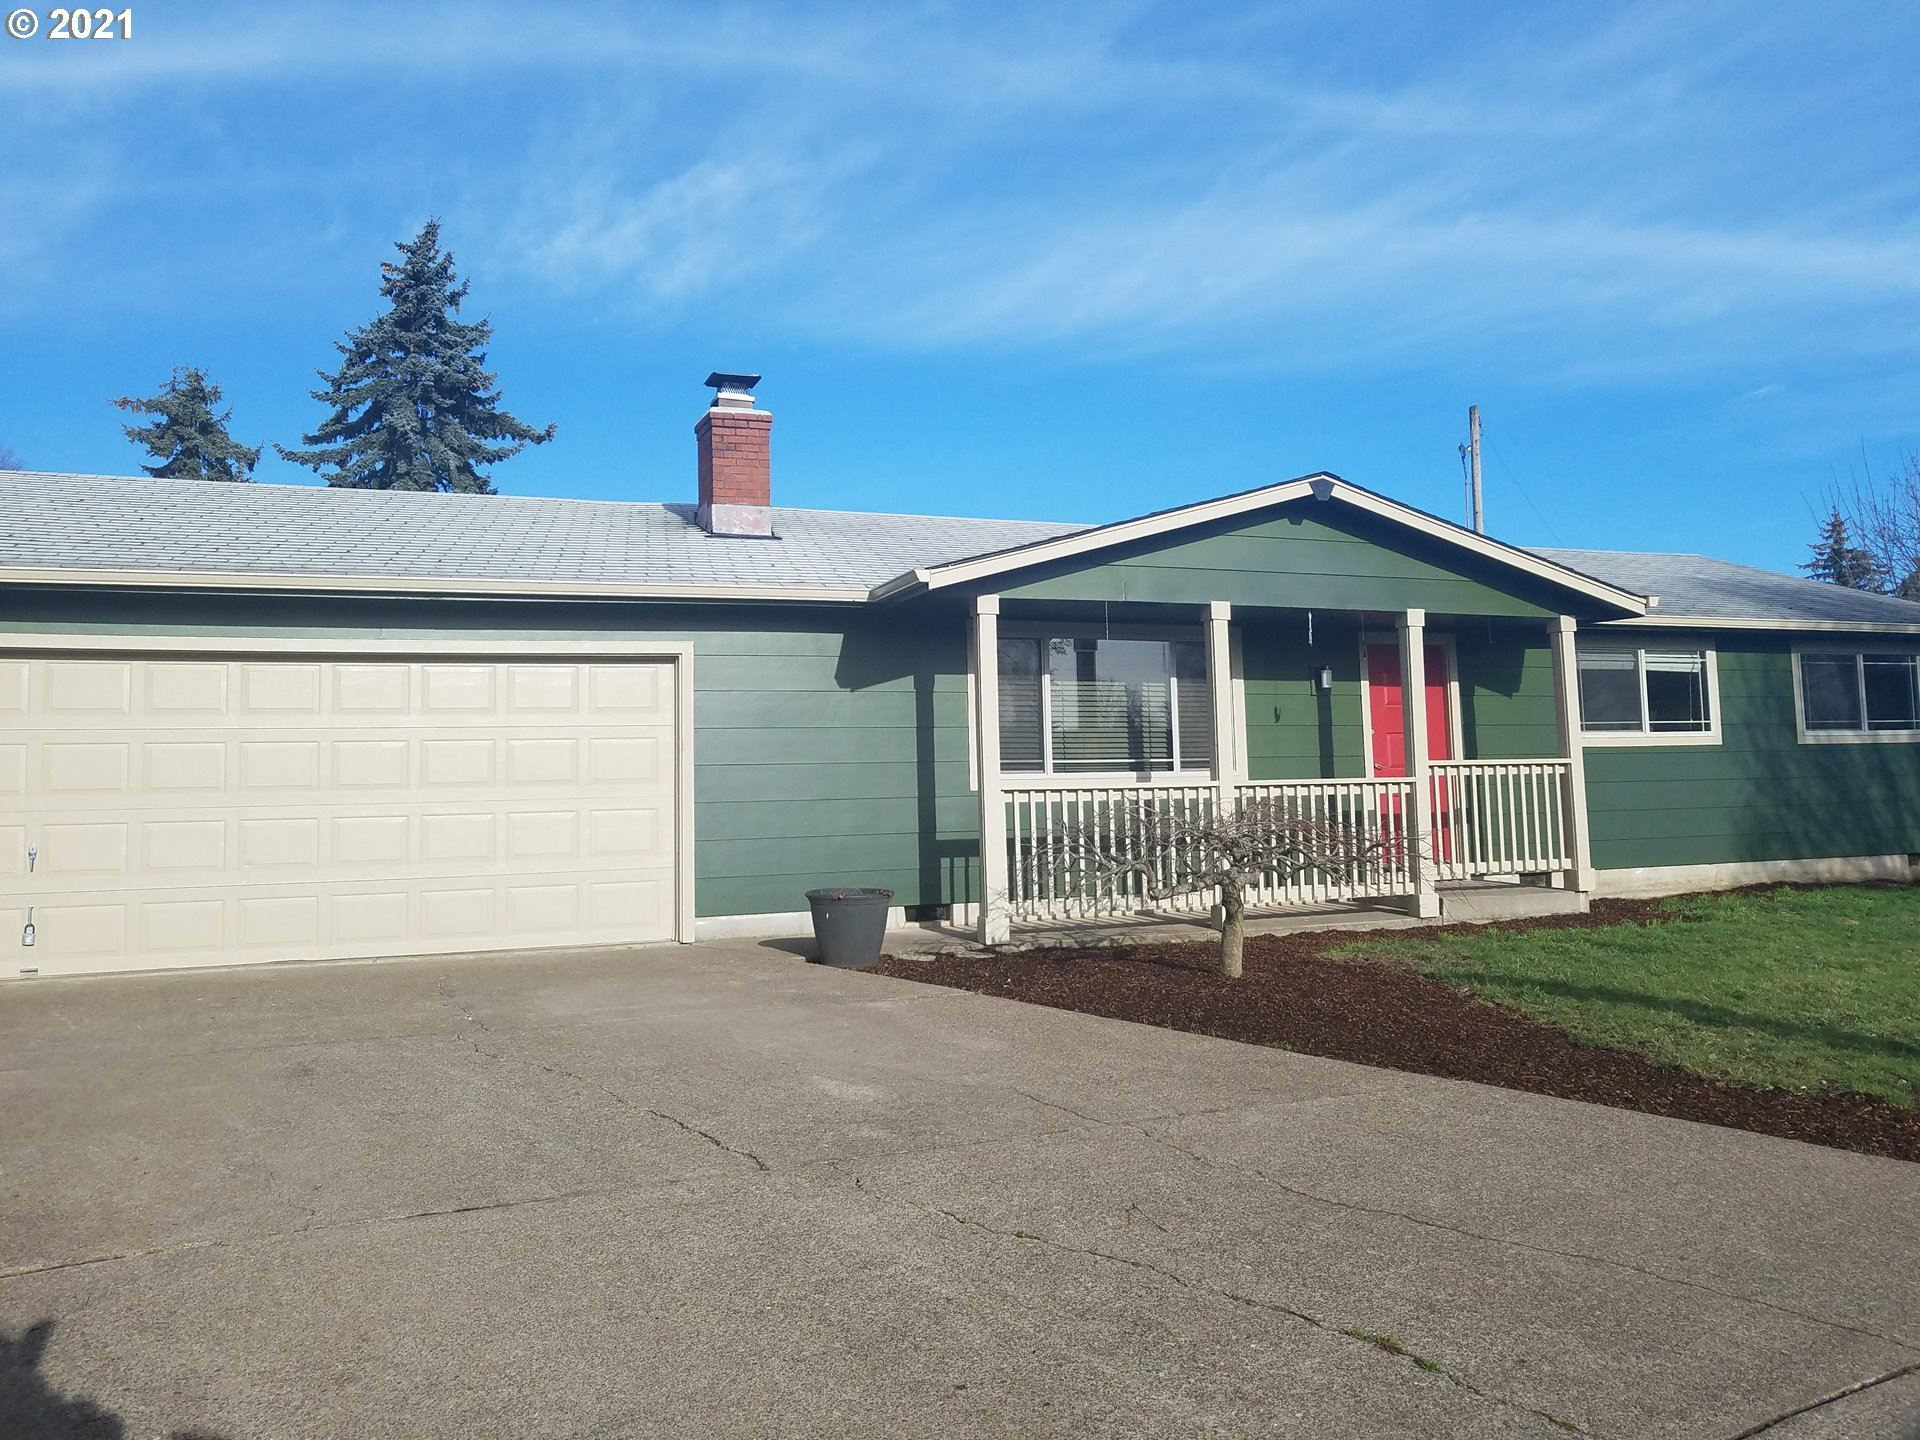 Photo for 249 S 35TH ST, Springfield, OR 97478 (MLS # 21424488)